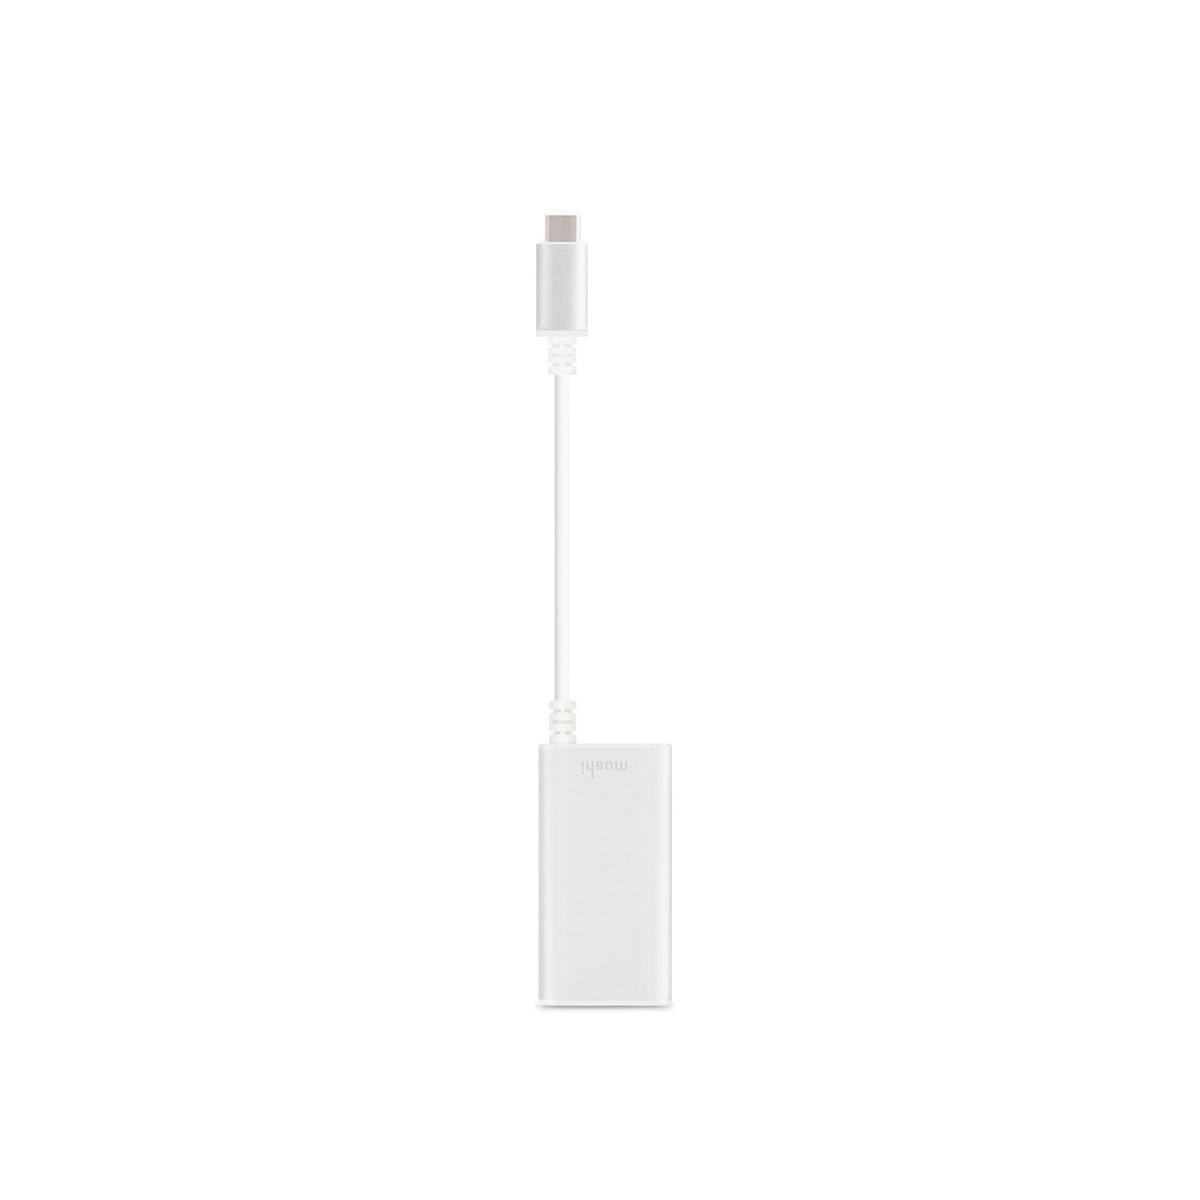 Moshi - USB-C to Gigabit Ethernet Adapter